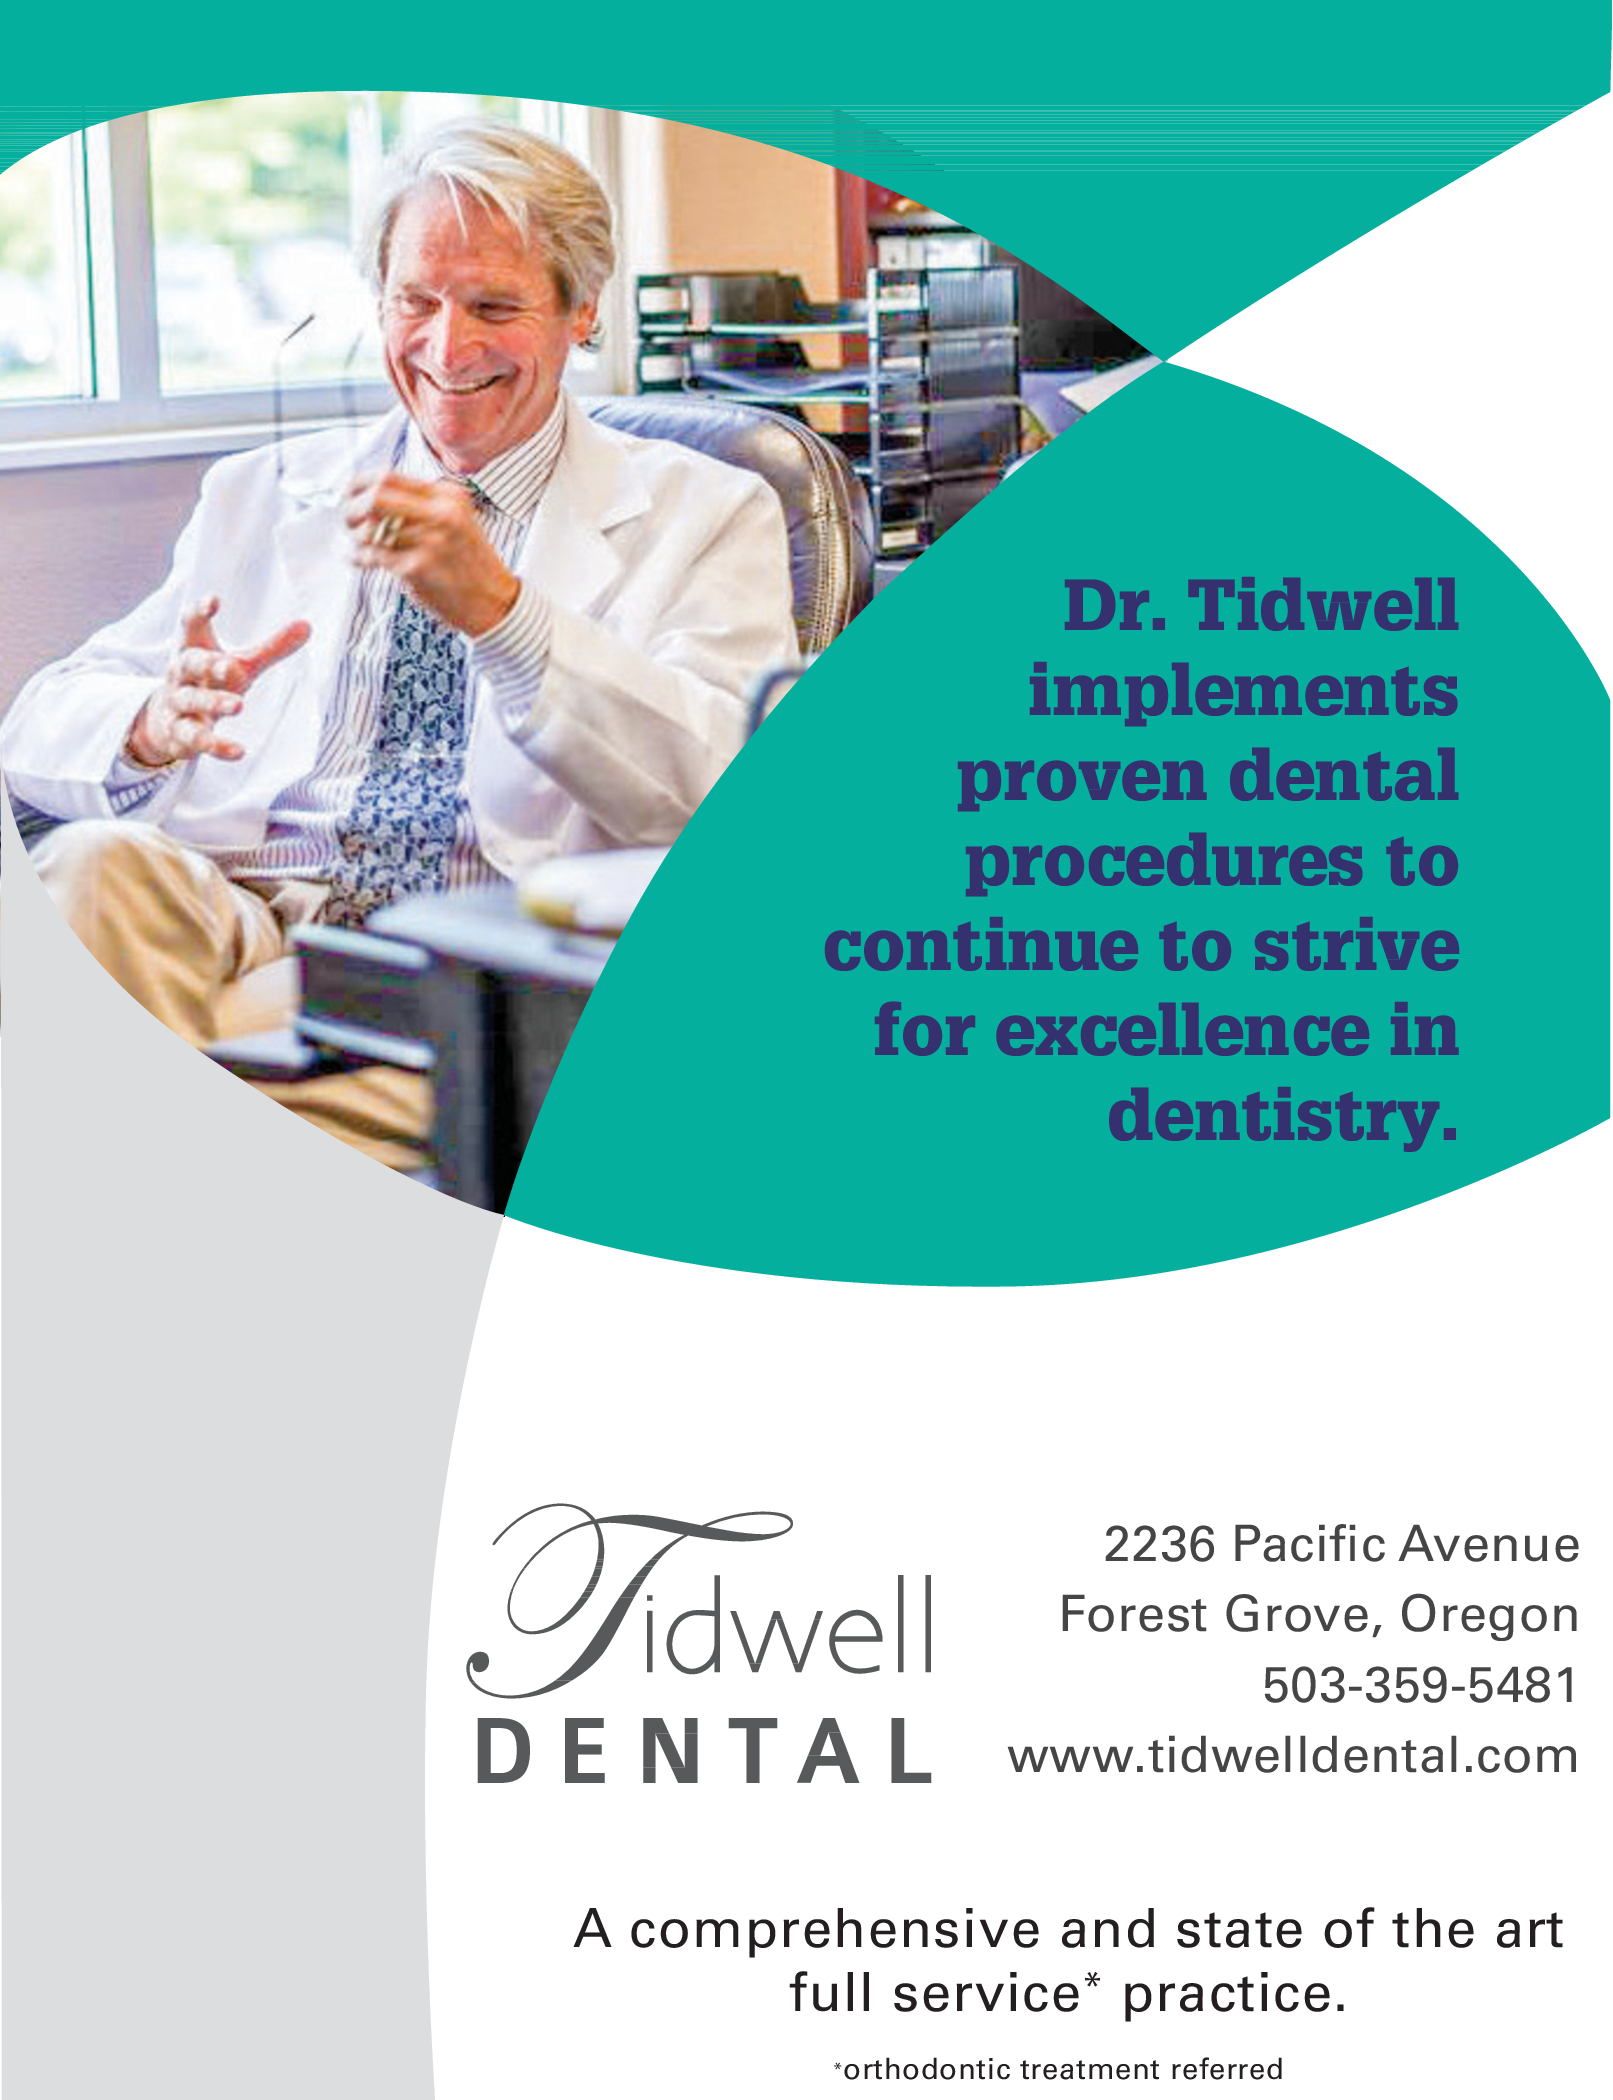 Full Dental Service Practice in Forest Grove, OR, Dental Care